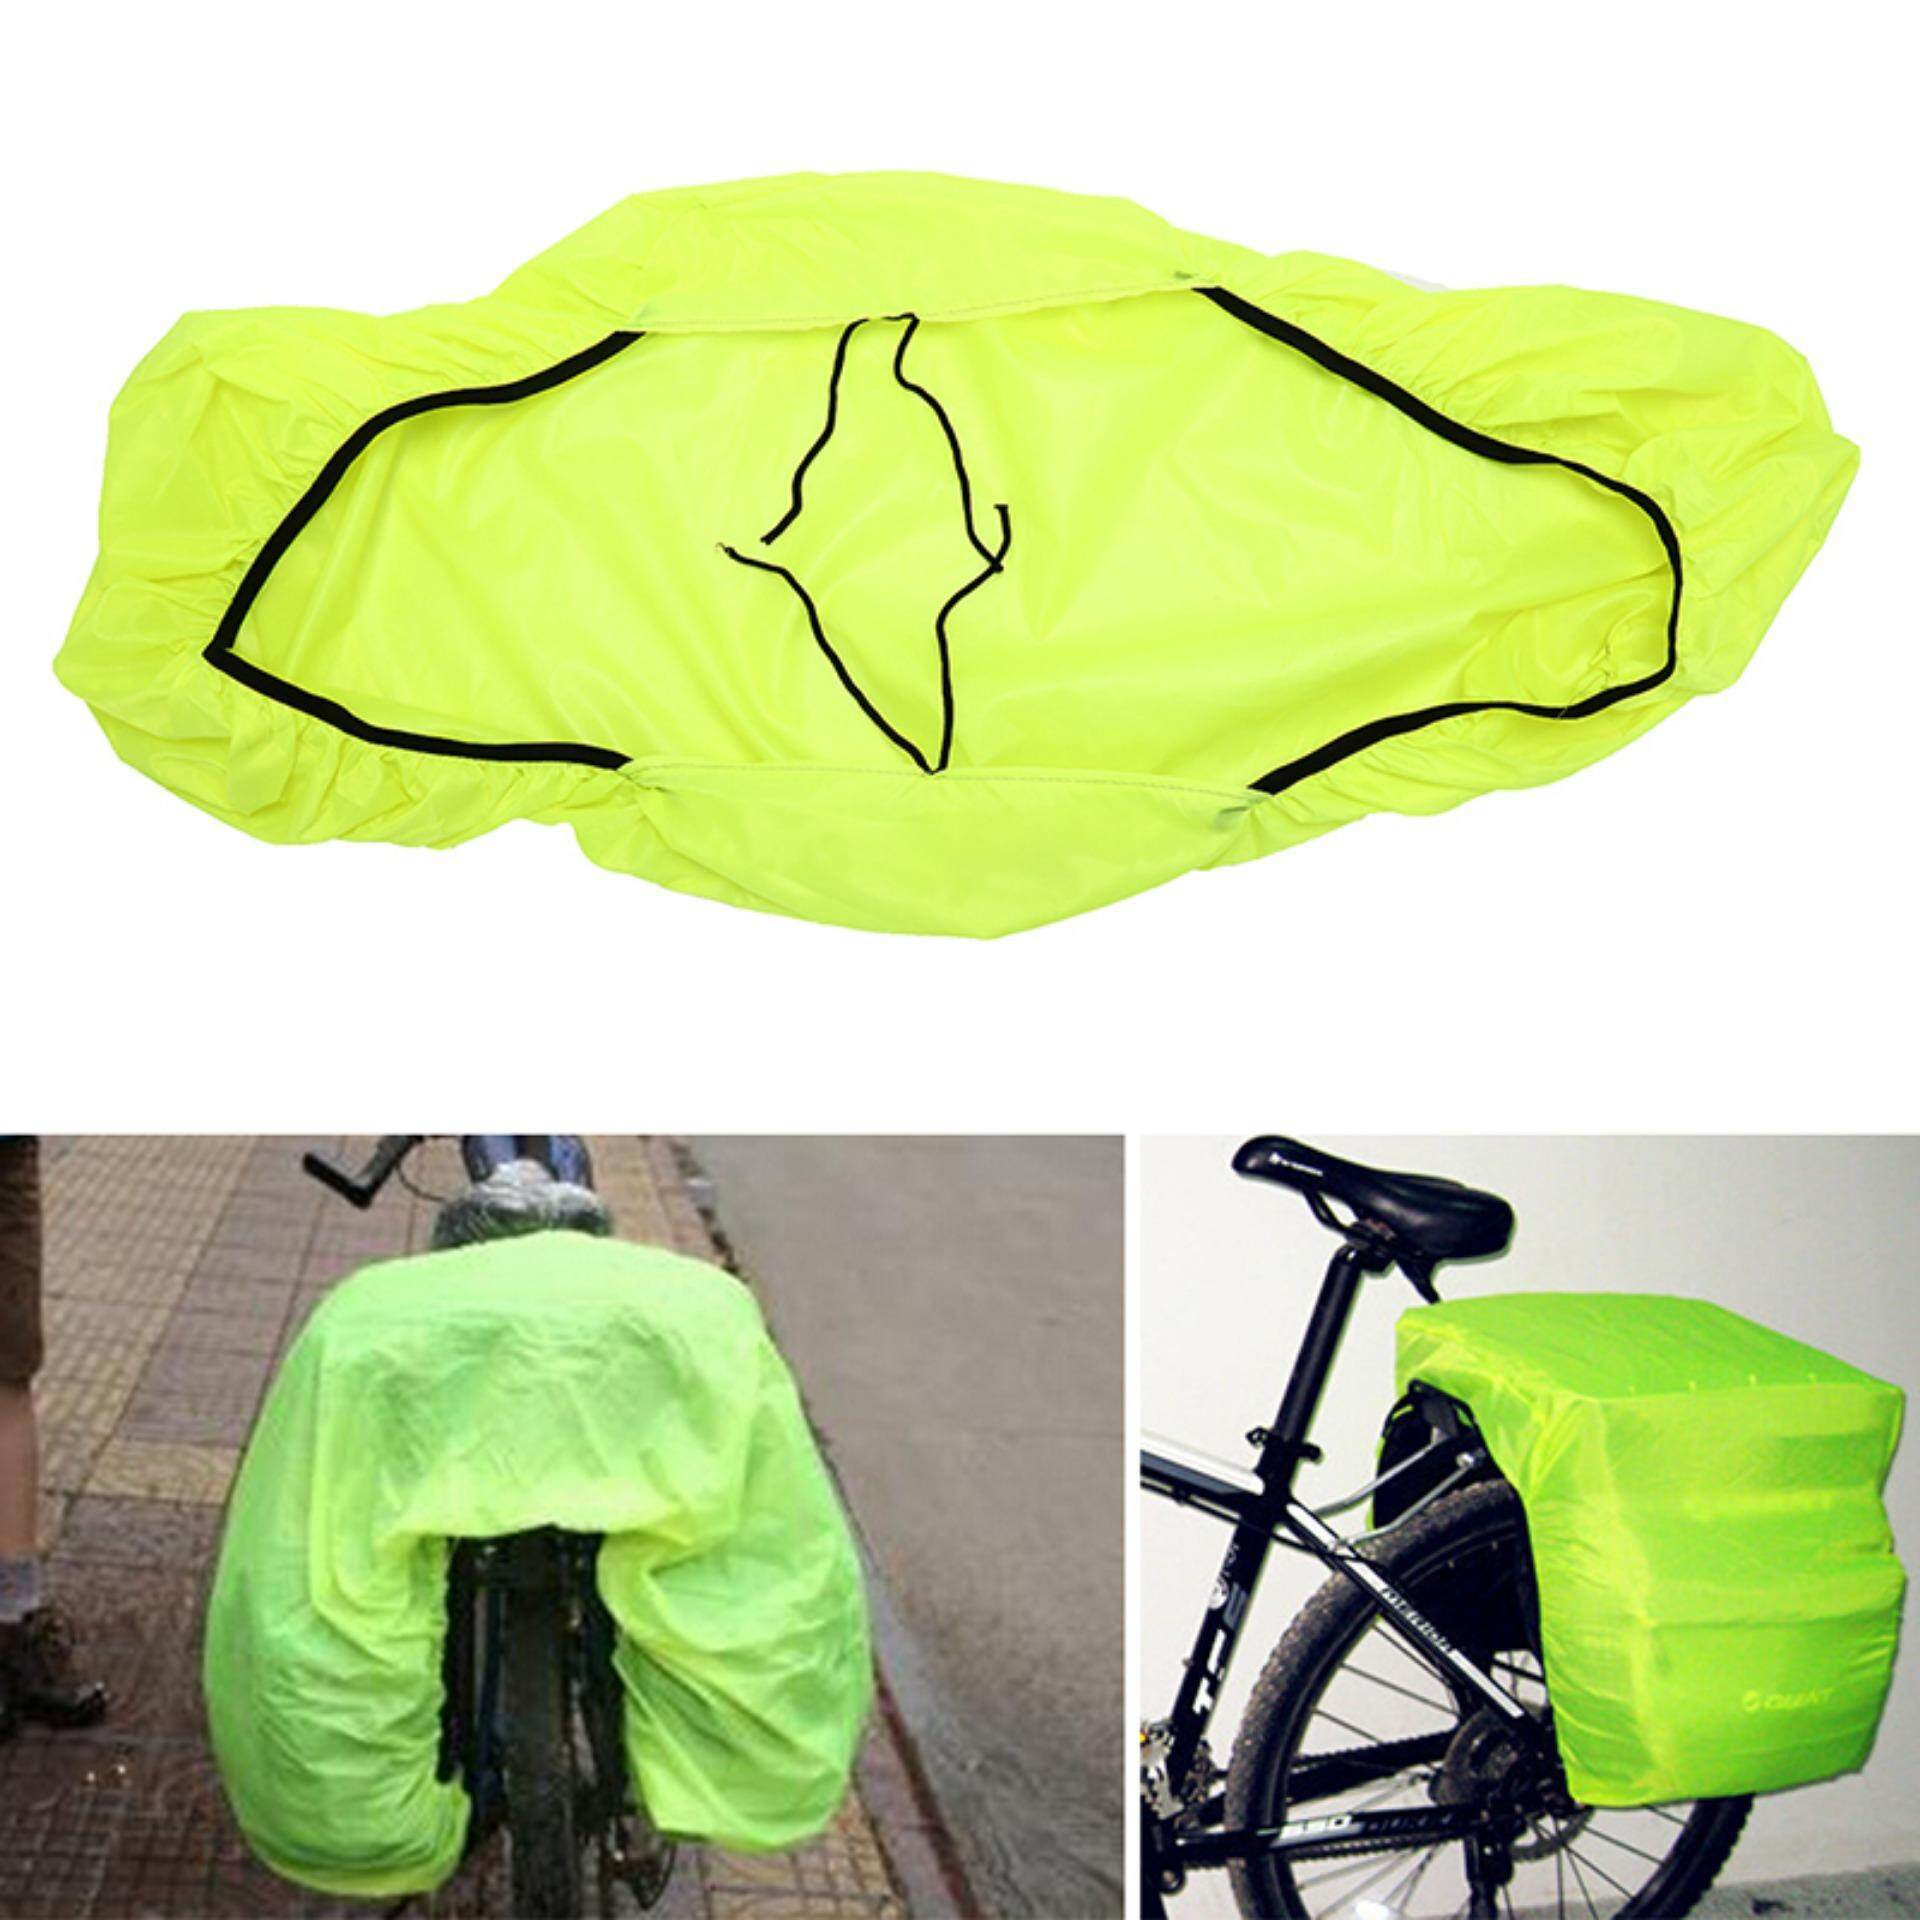 waterproof bicycle bike reflective cover bike rack pack bag dust rain cover